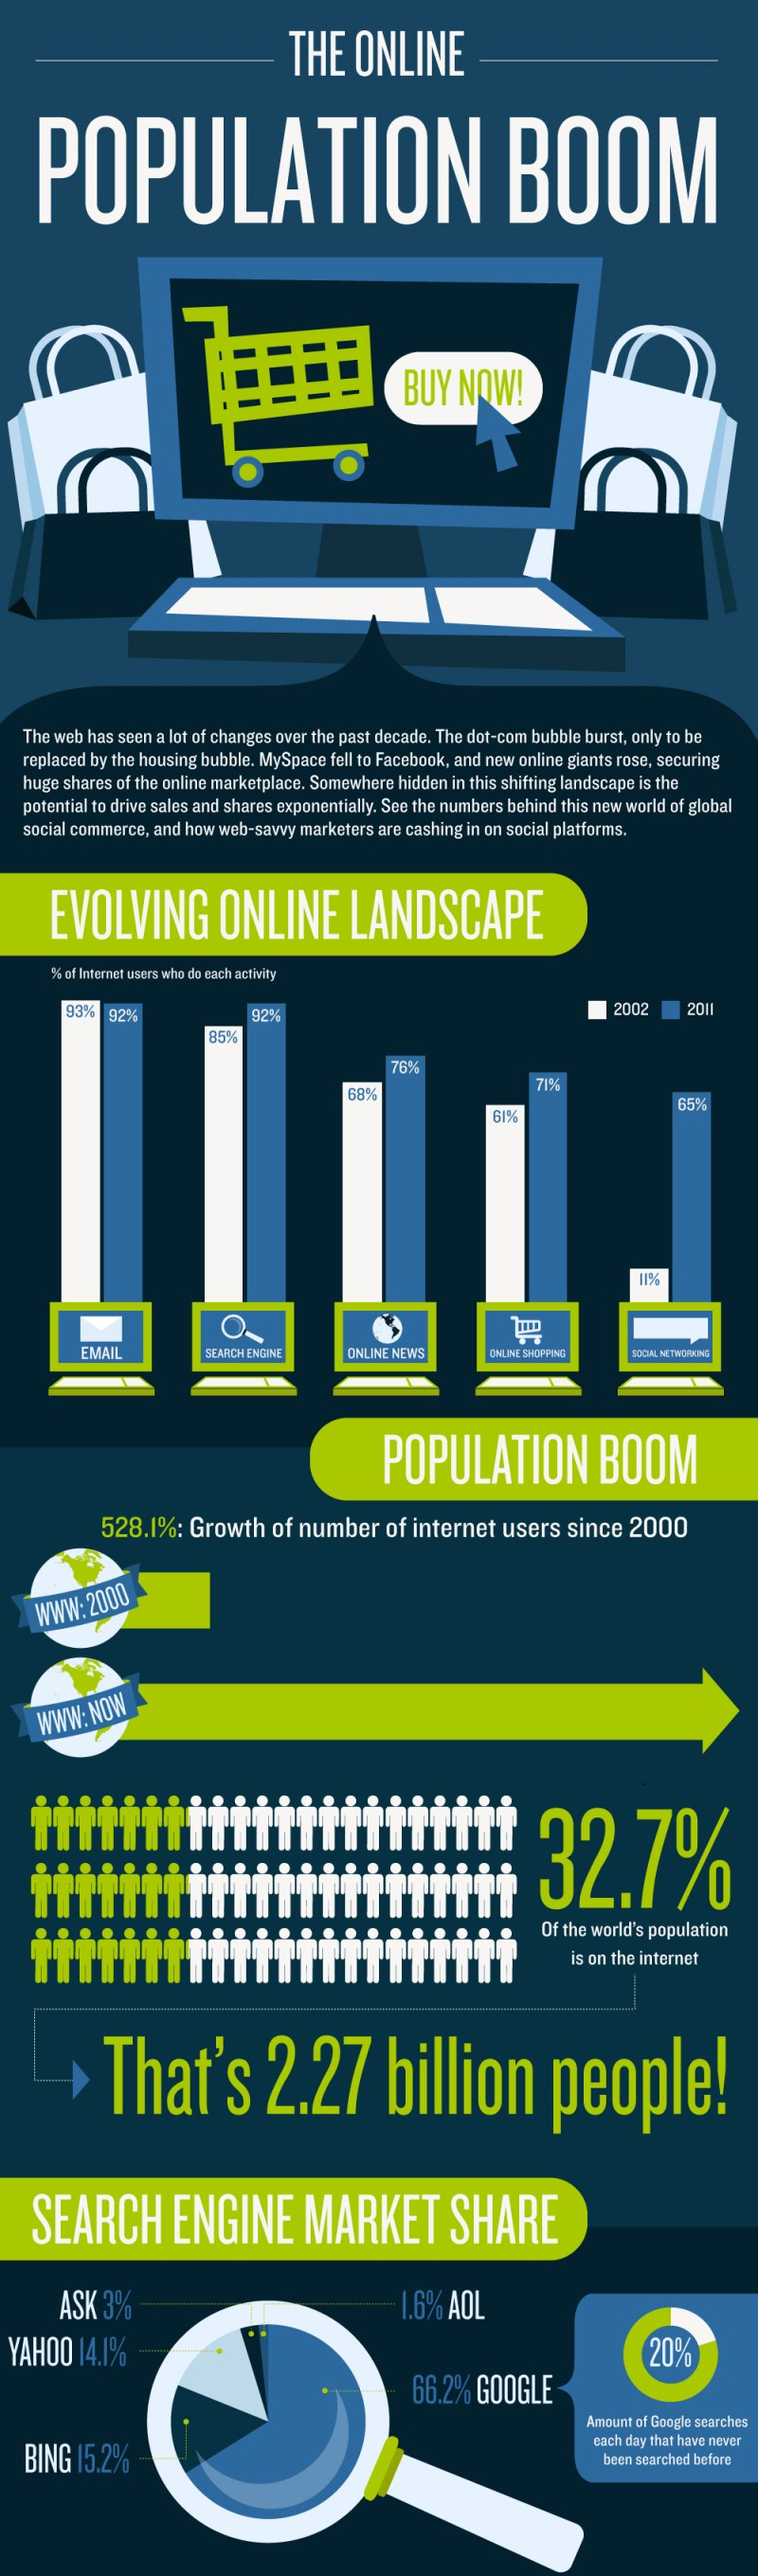 The-Online-Population-Boom-infographic